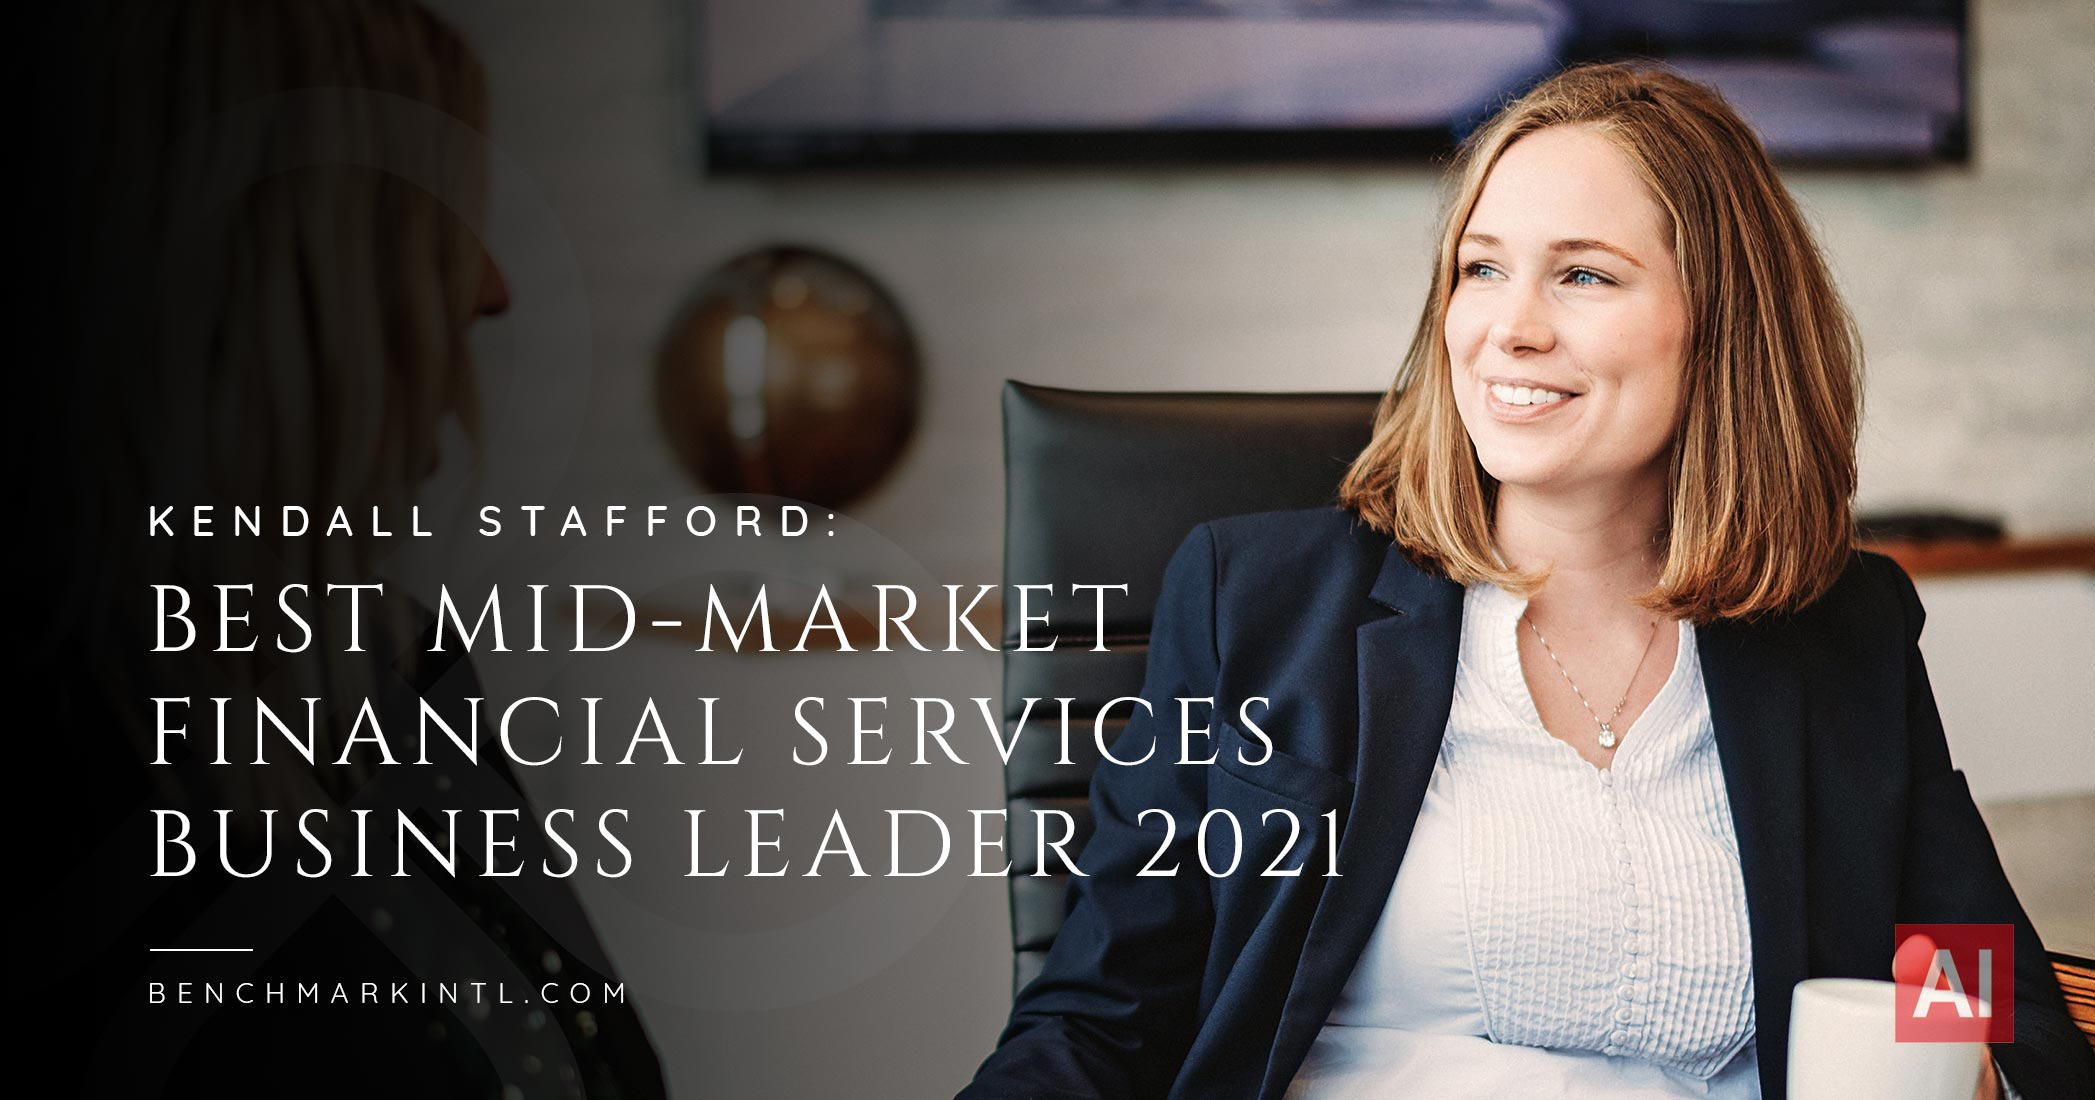 Kendall Stafford Named Best Mid-Market Financial Services Business Leader 2021